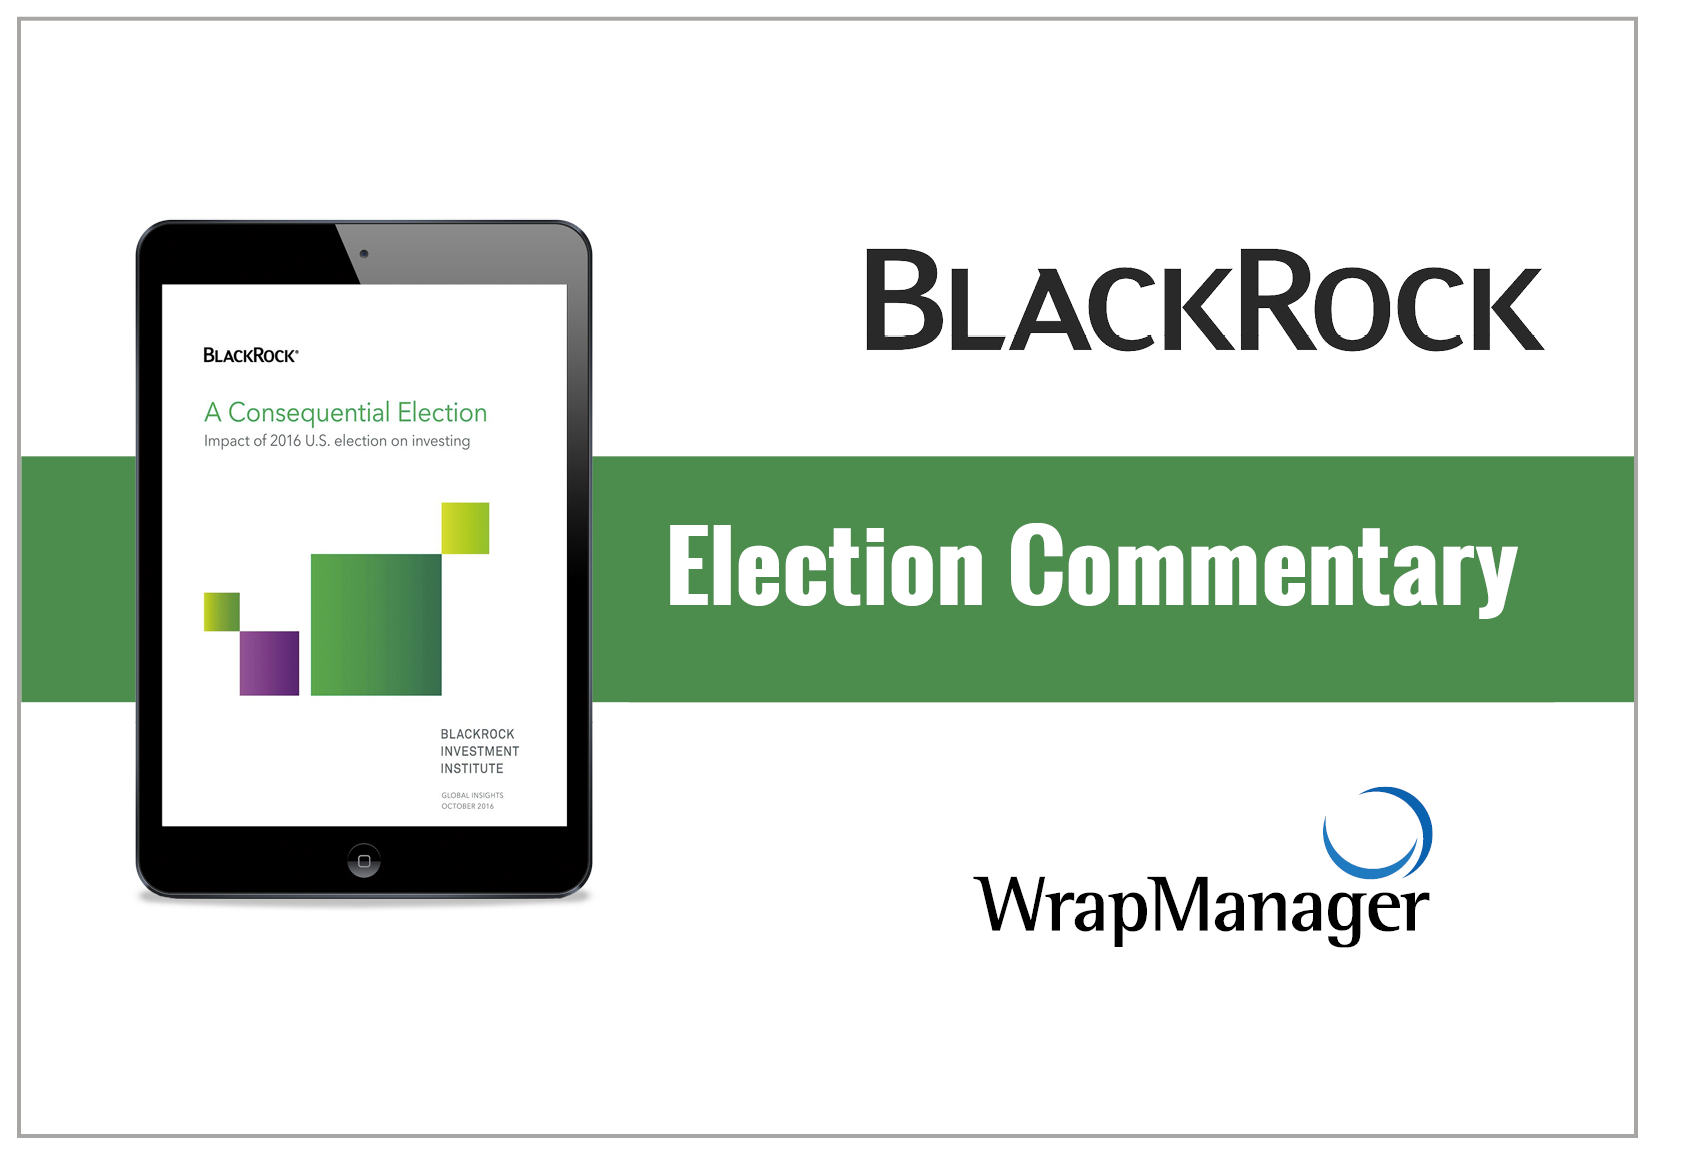 Blackrock: Impact of the 2016 Election on Investing